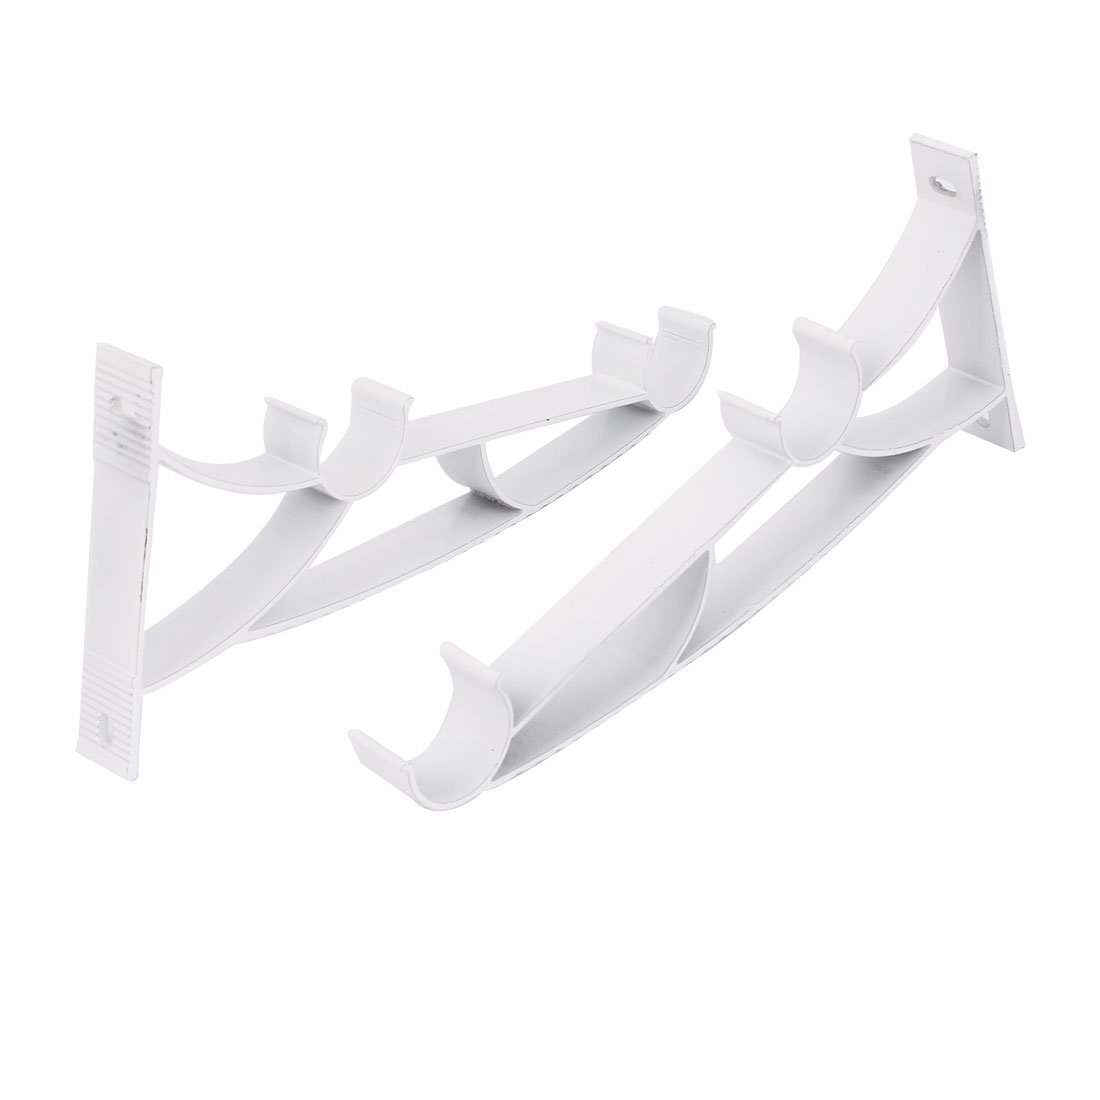 1-inch Dia Double Drapery Curtain Rod Metal Wall Bracket White 2pcs uxcell a14121900ux0399